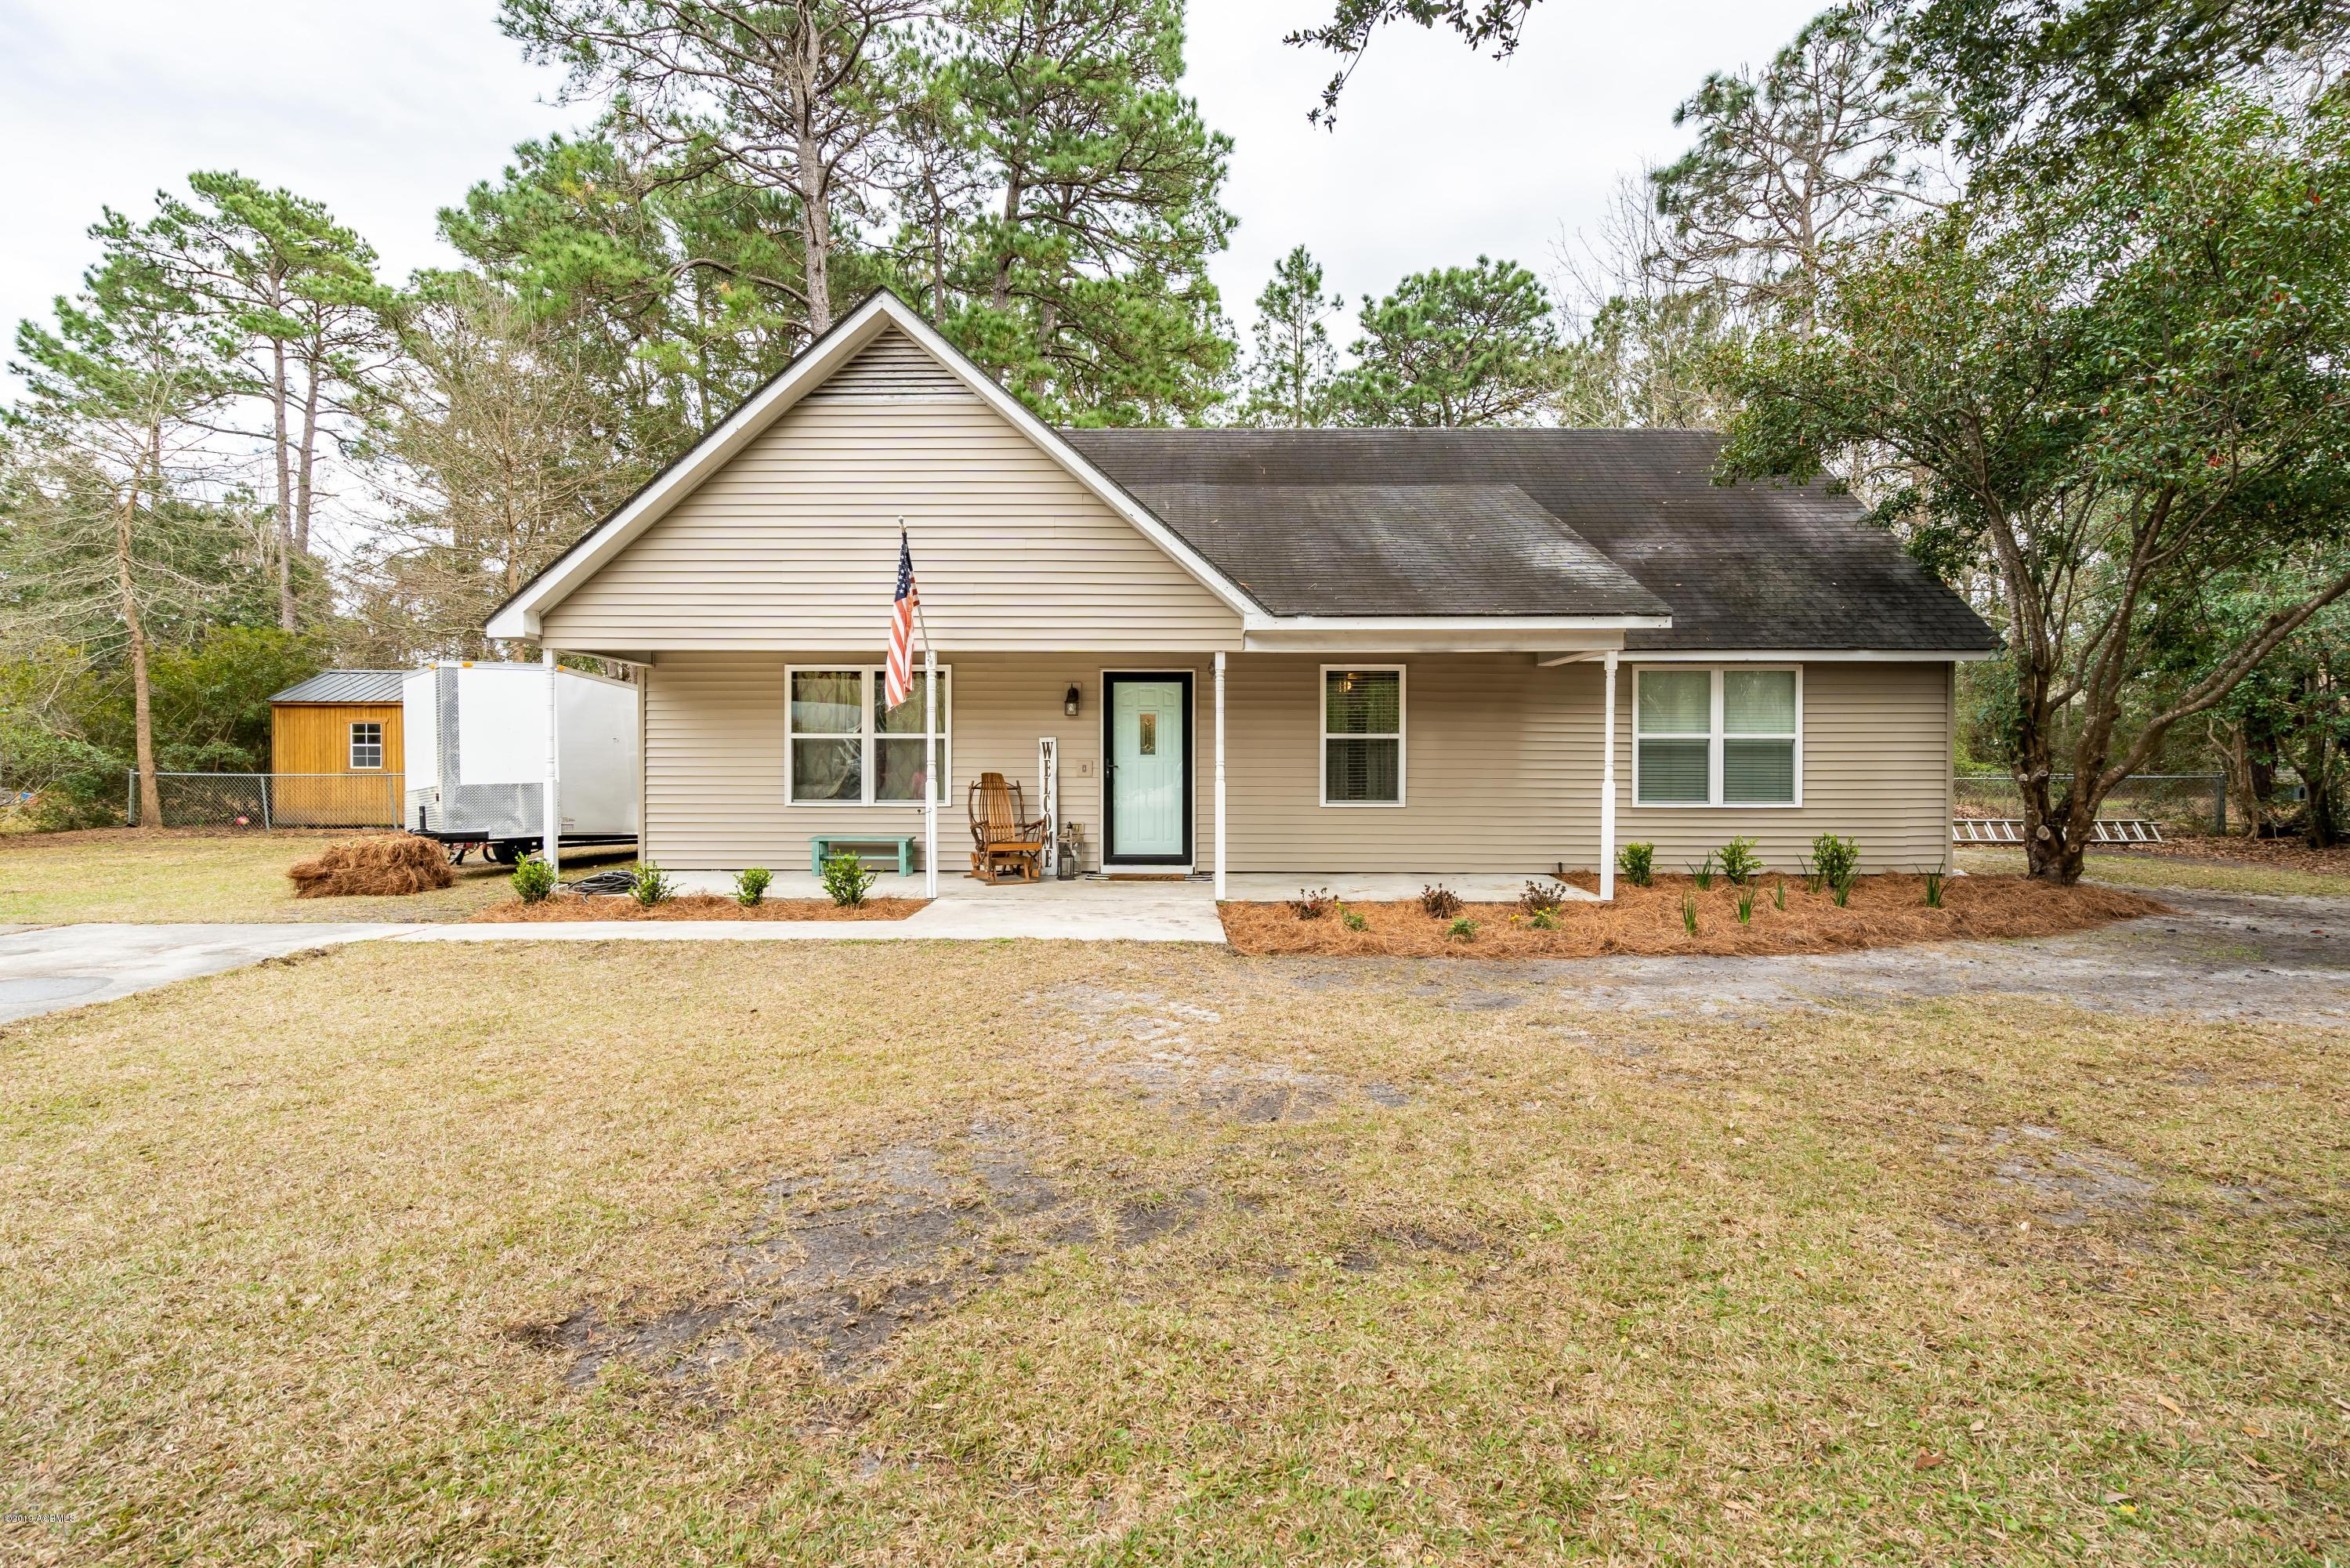 Photo of 16 Hewlett Road, Beaufort, SC 29907